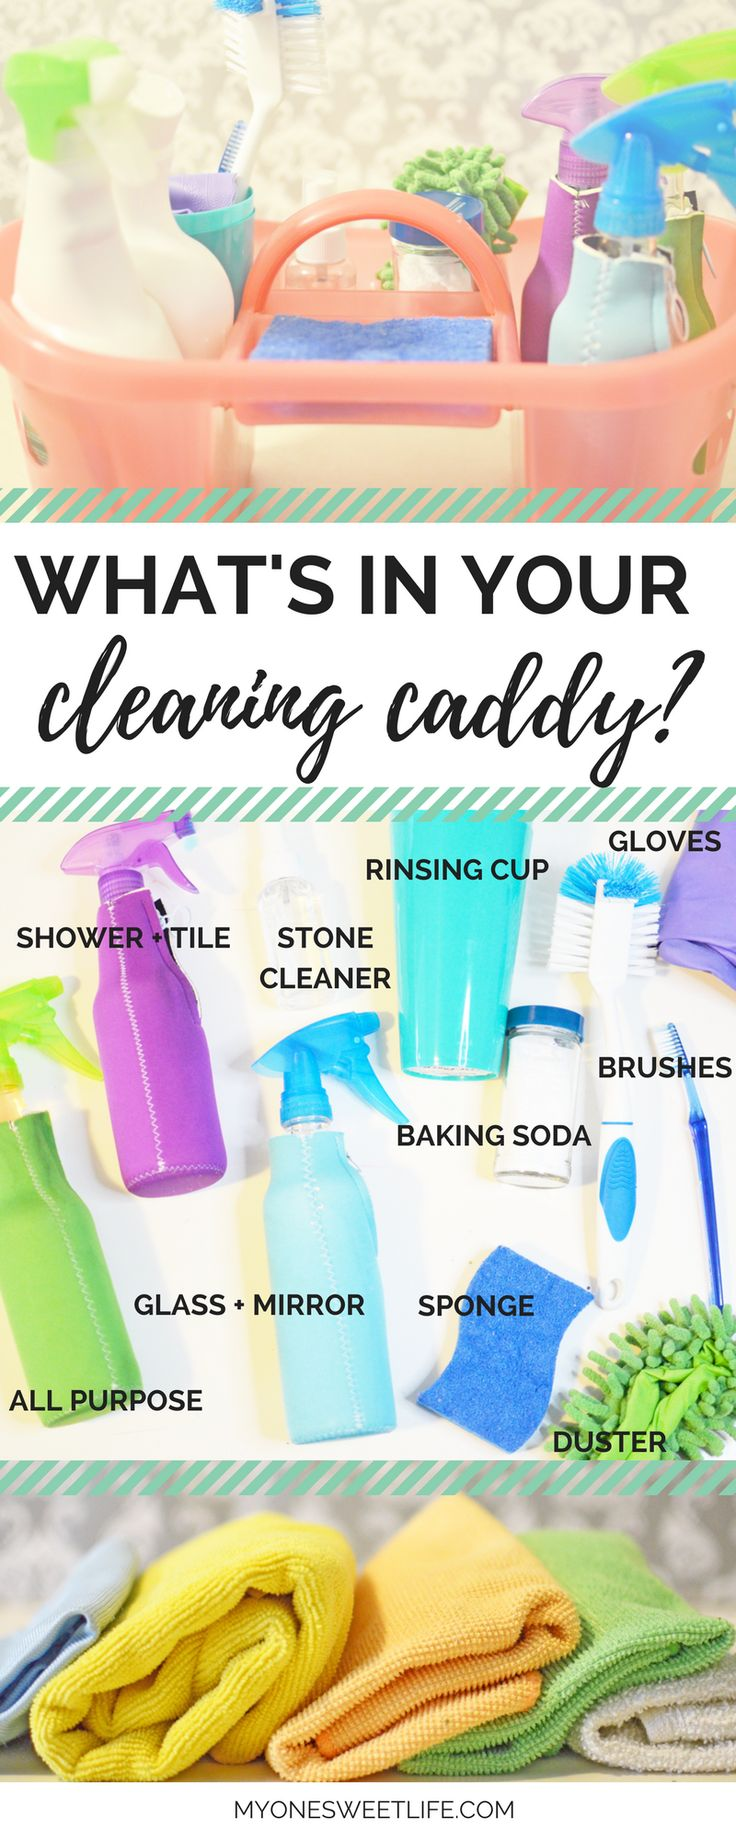 Create a simple cleaning caddy to keep you organized and on top of the cleaning duties in your house. Quick and easy cleaning tips to help get you started!